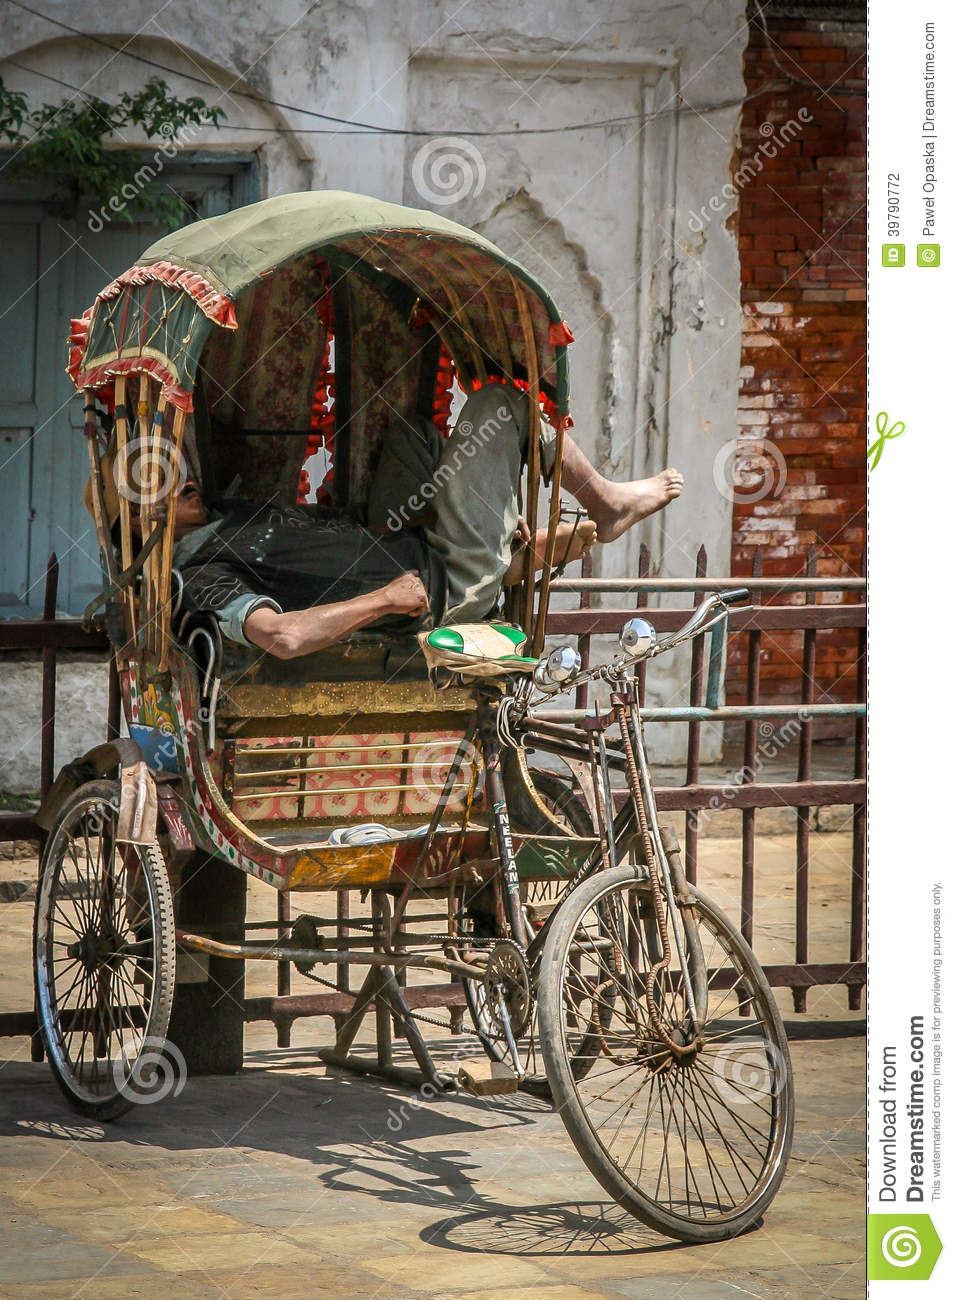 Napping in rickshaw